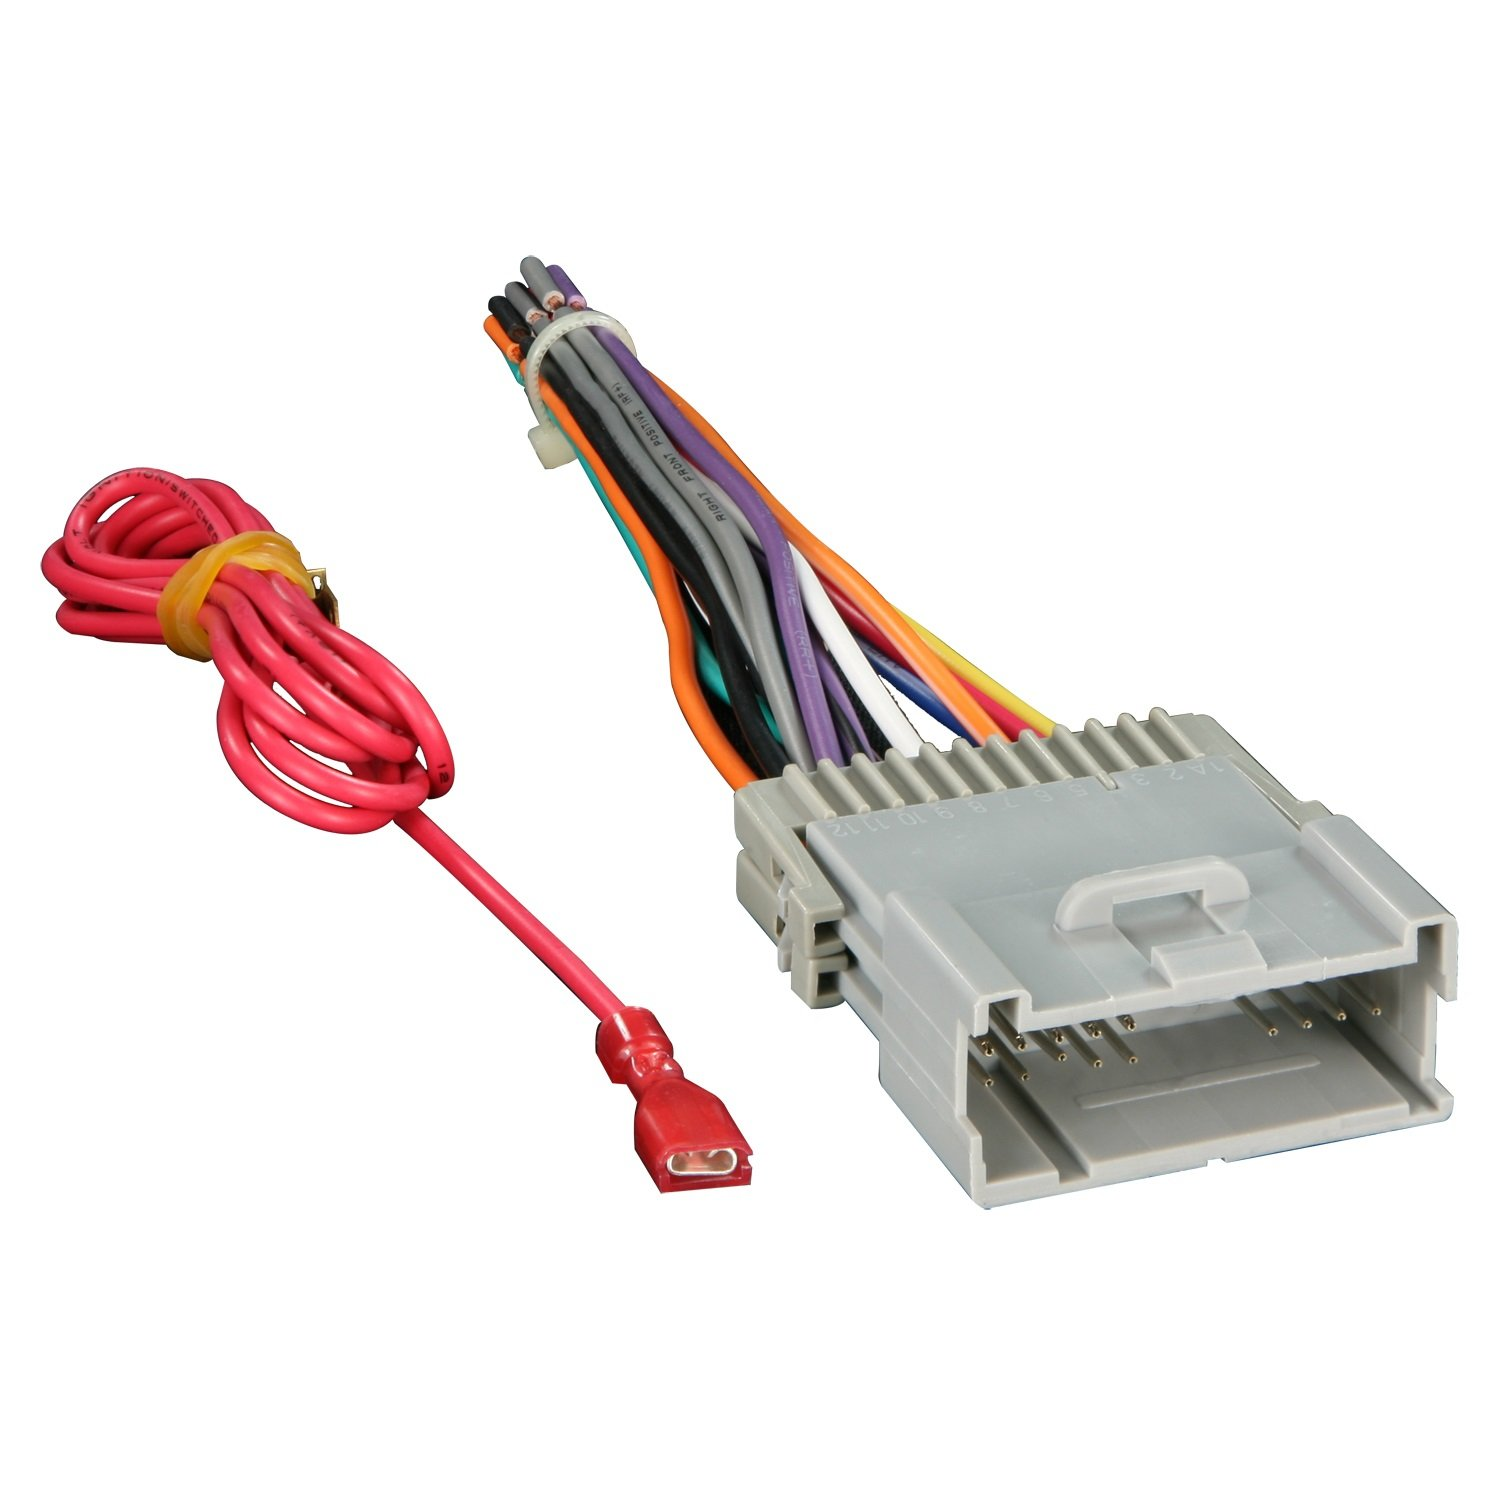 61eewxp9orL._SL1500_ amazon com metra 70 2003 radio wiring harness for gm 98 08  at gsmportal.co